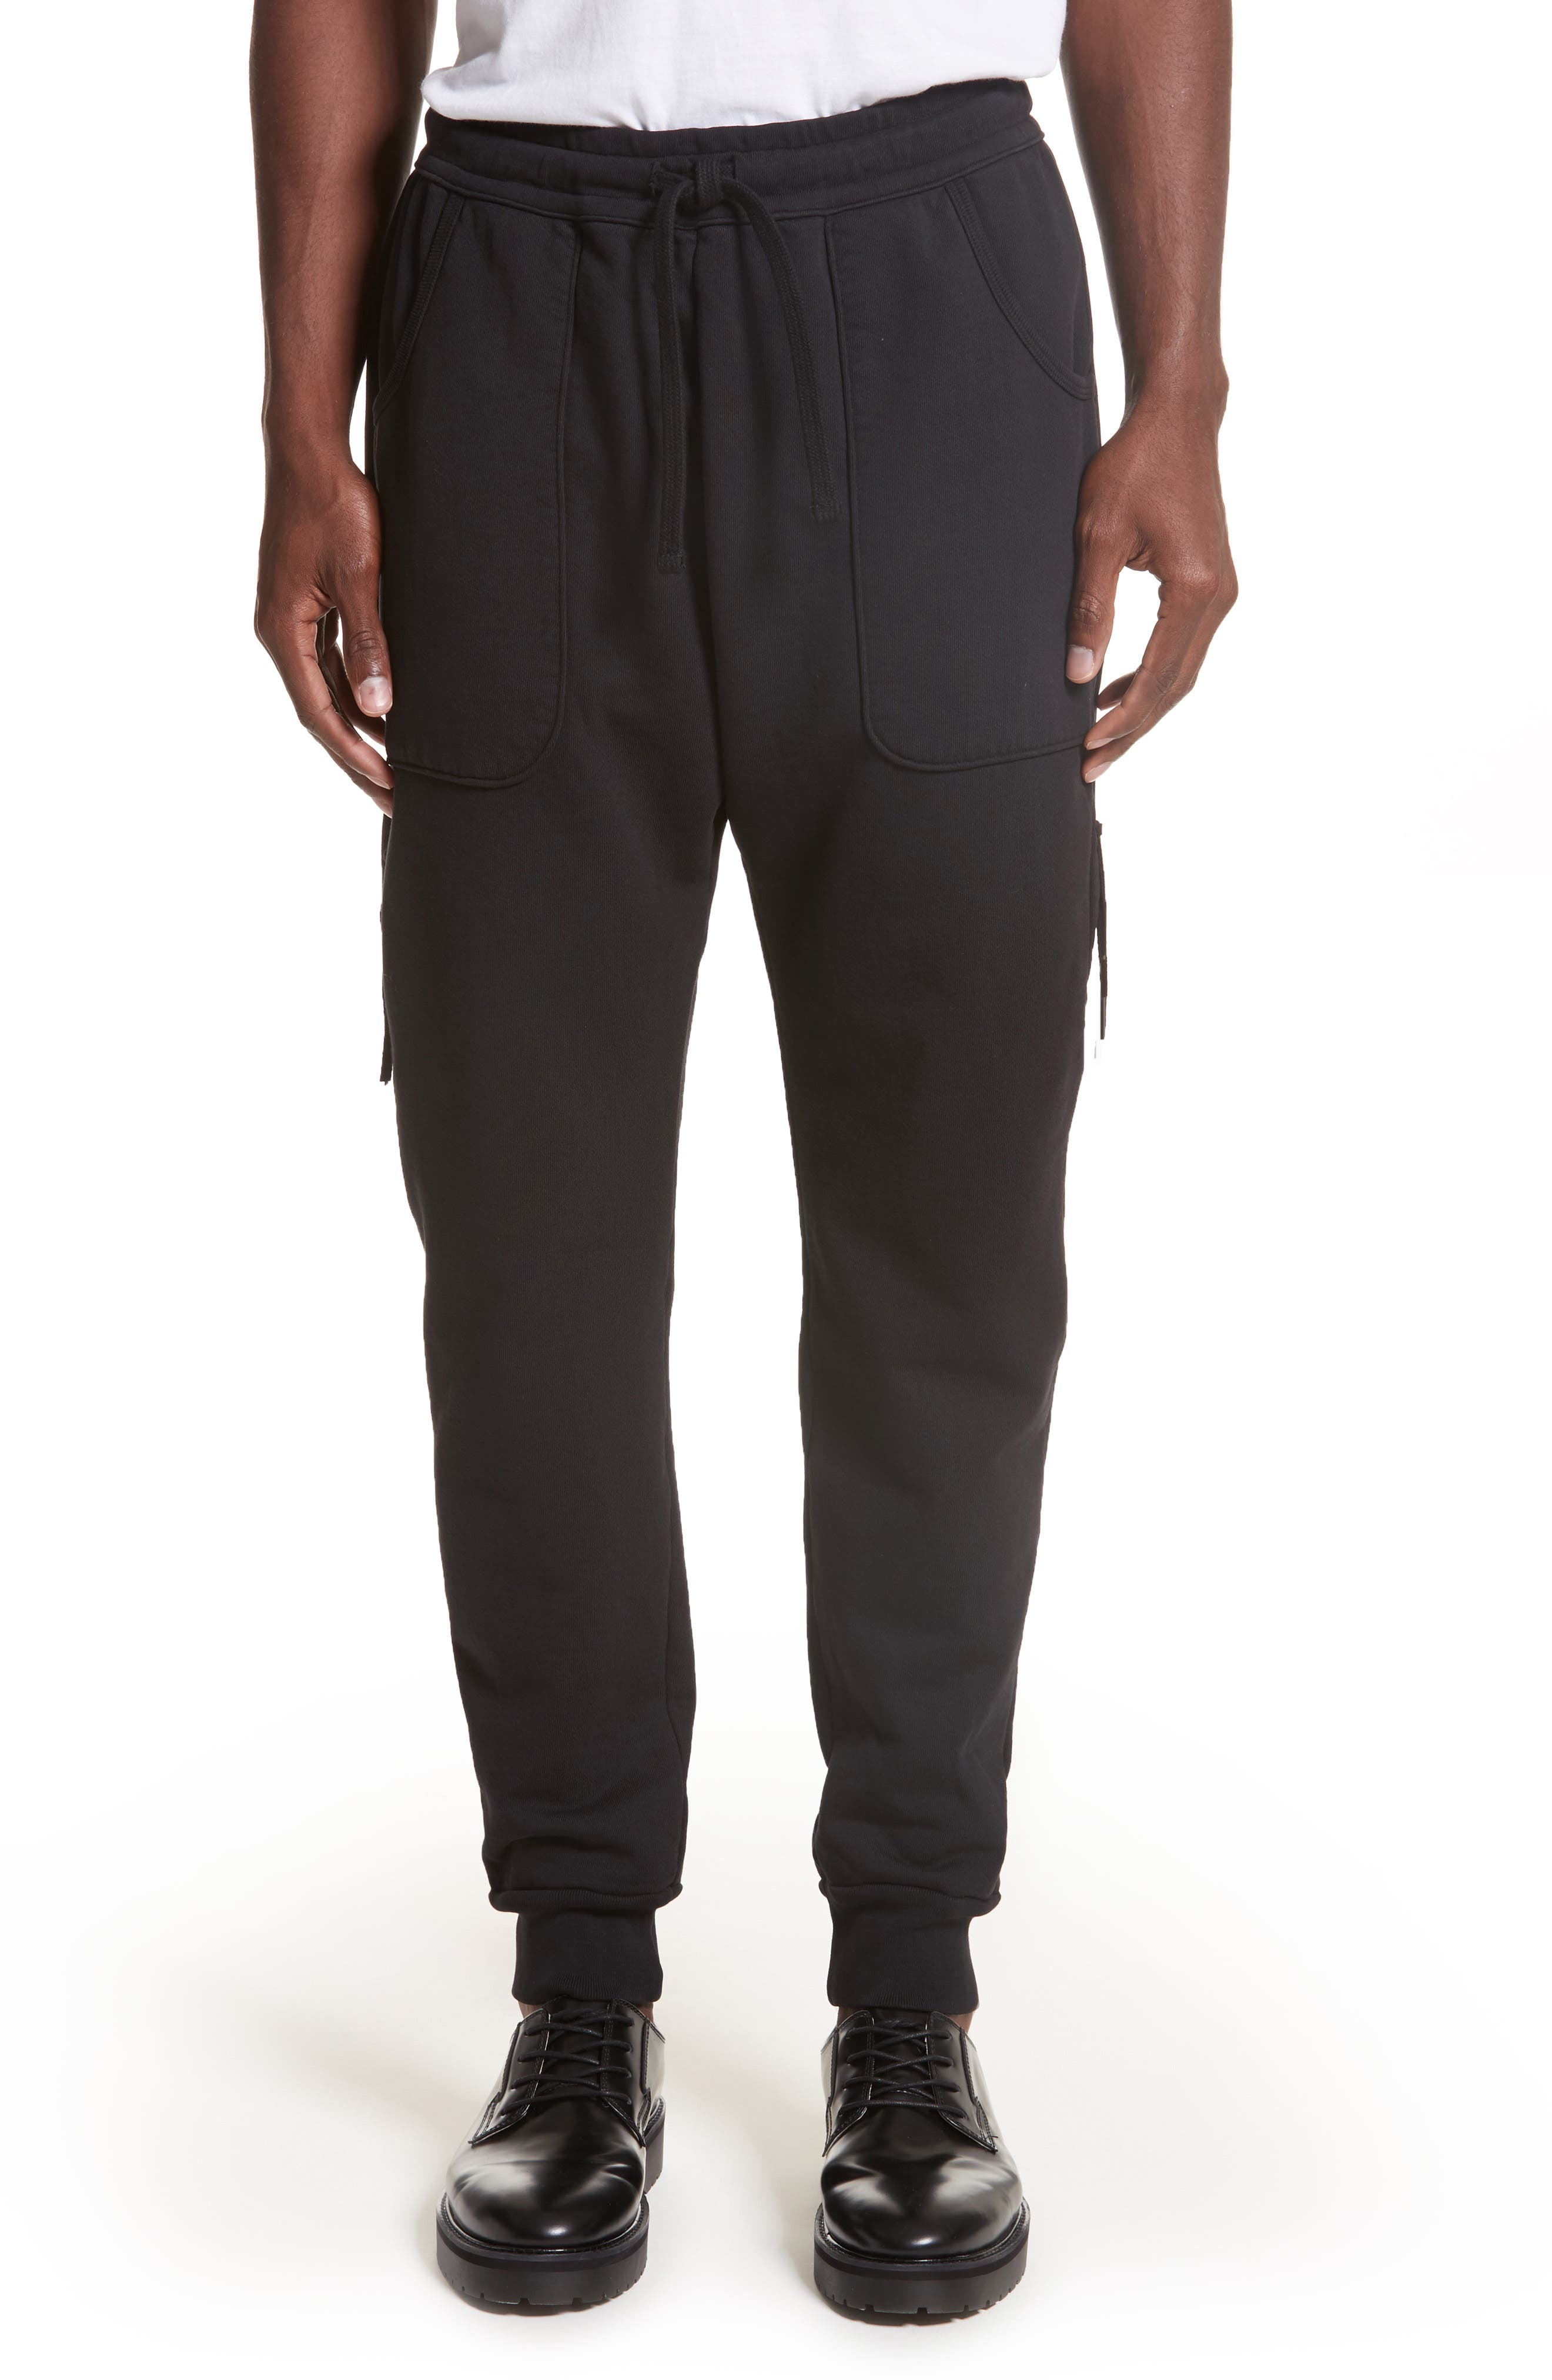 Muldoom Cargo Jogger Pants,                             Main thumbnail 1, color,